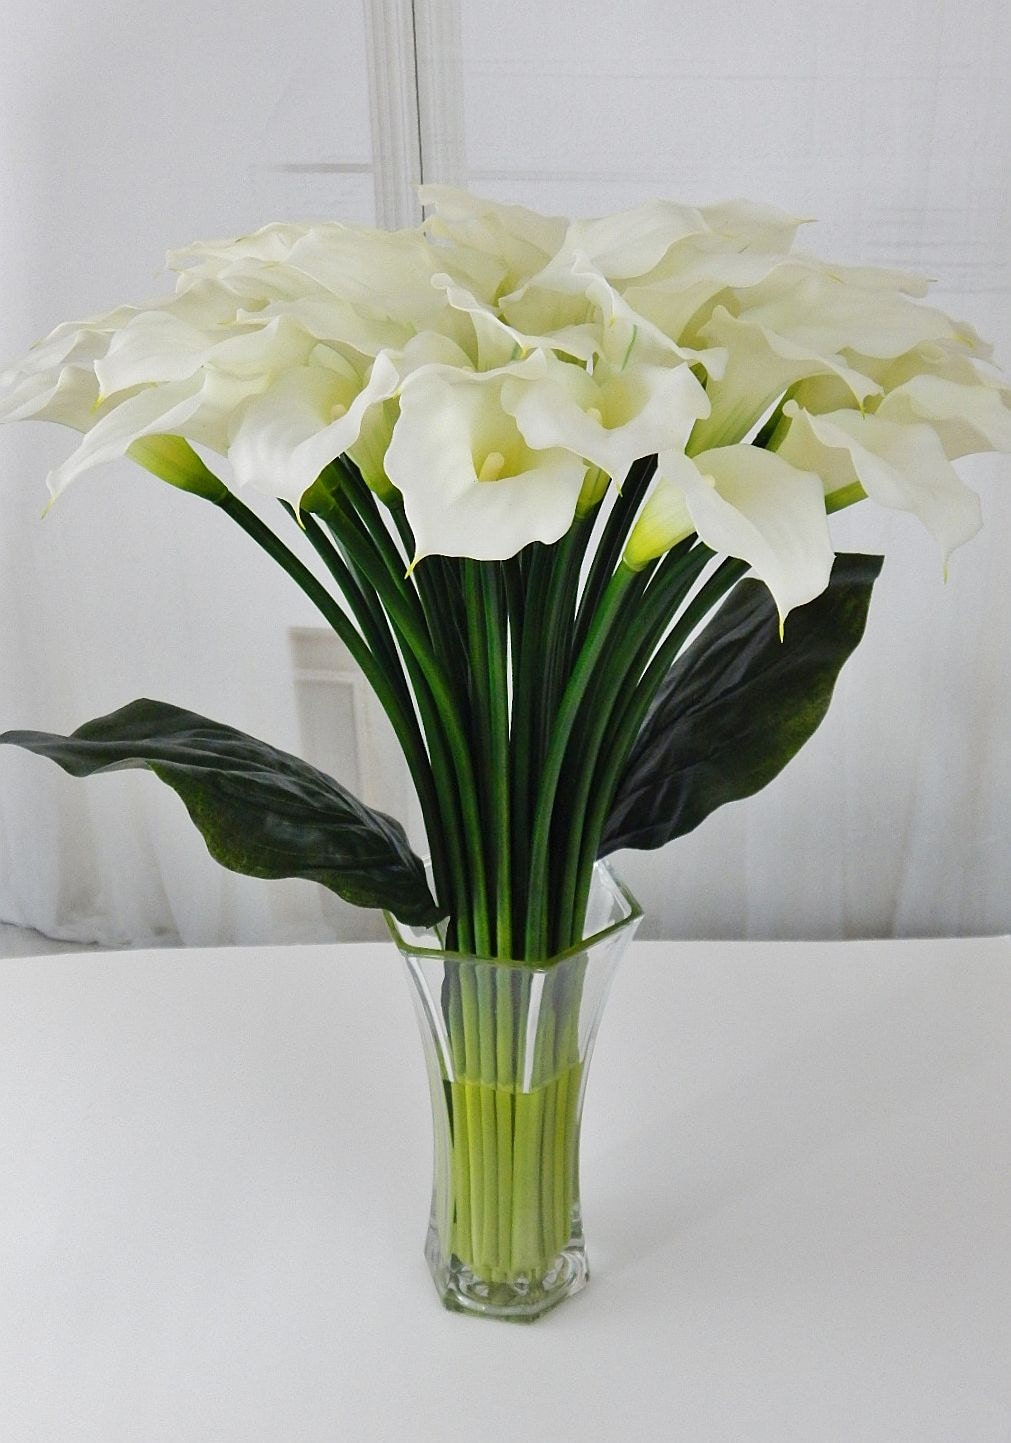 Largetall silk modern floral arrangement calla lilylilies largetall silk modern floral arrangement calla lilylilies white faux water acrylicillusion real touch flowers centerpiece glass mightylinksfo